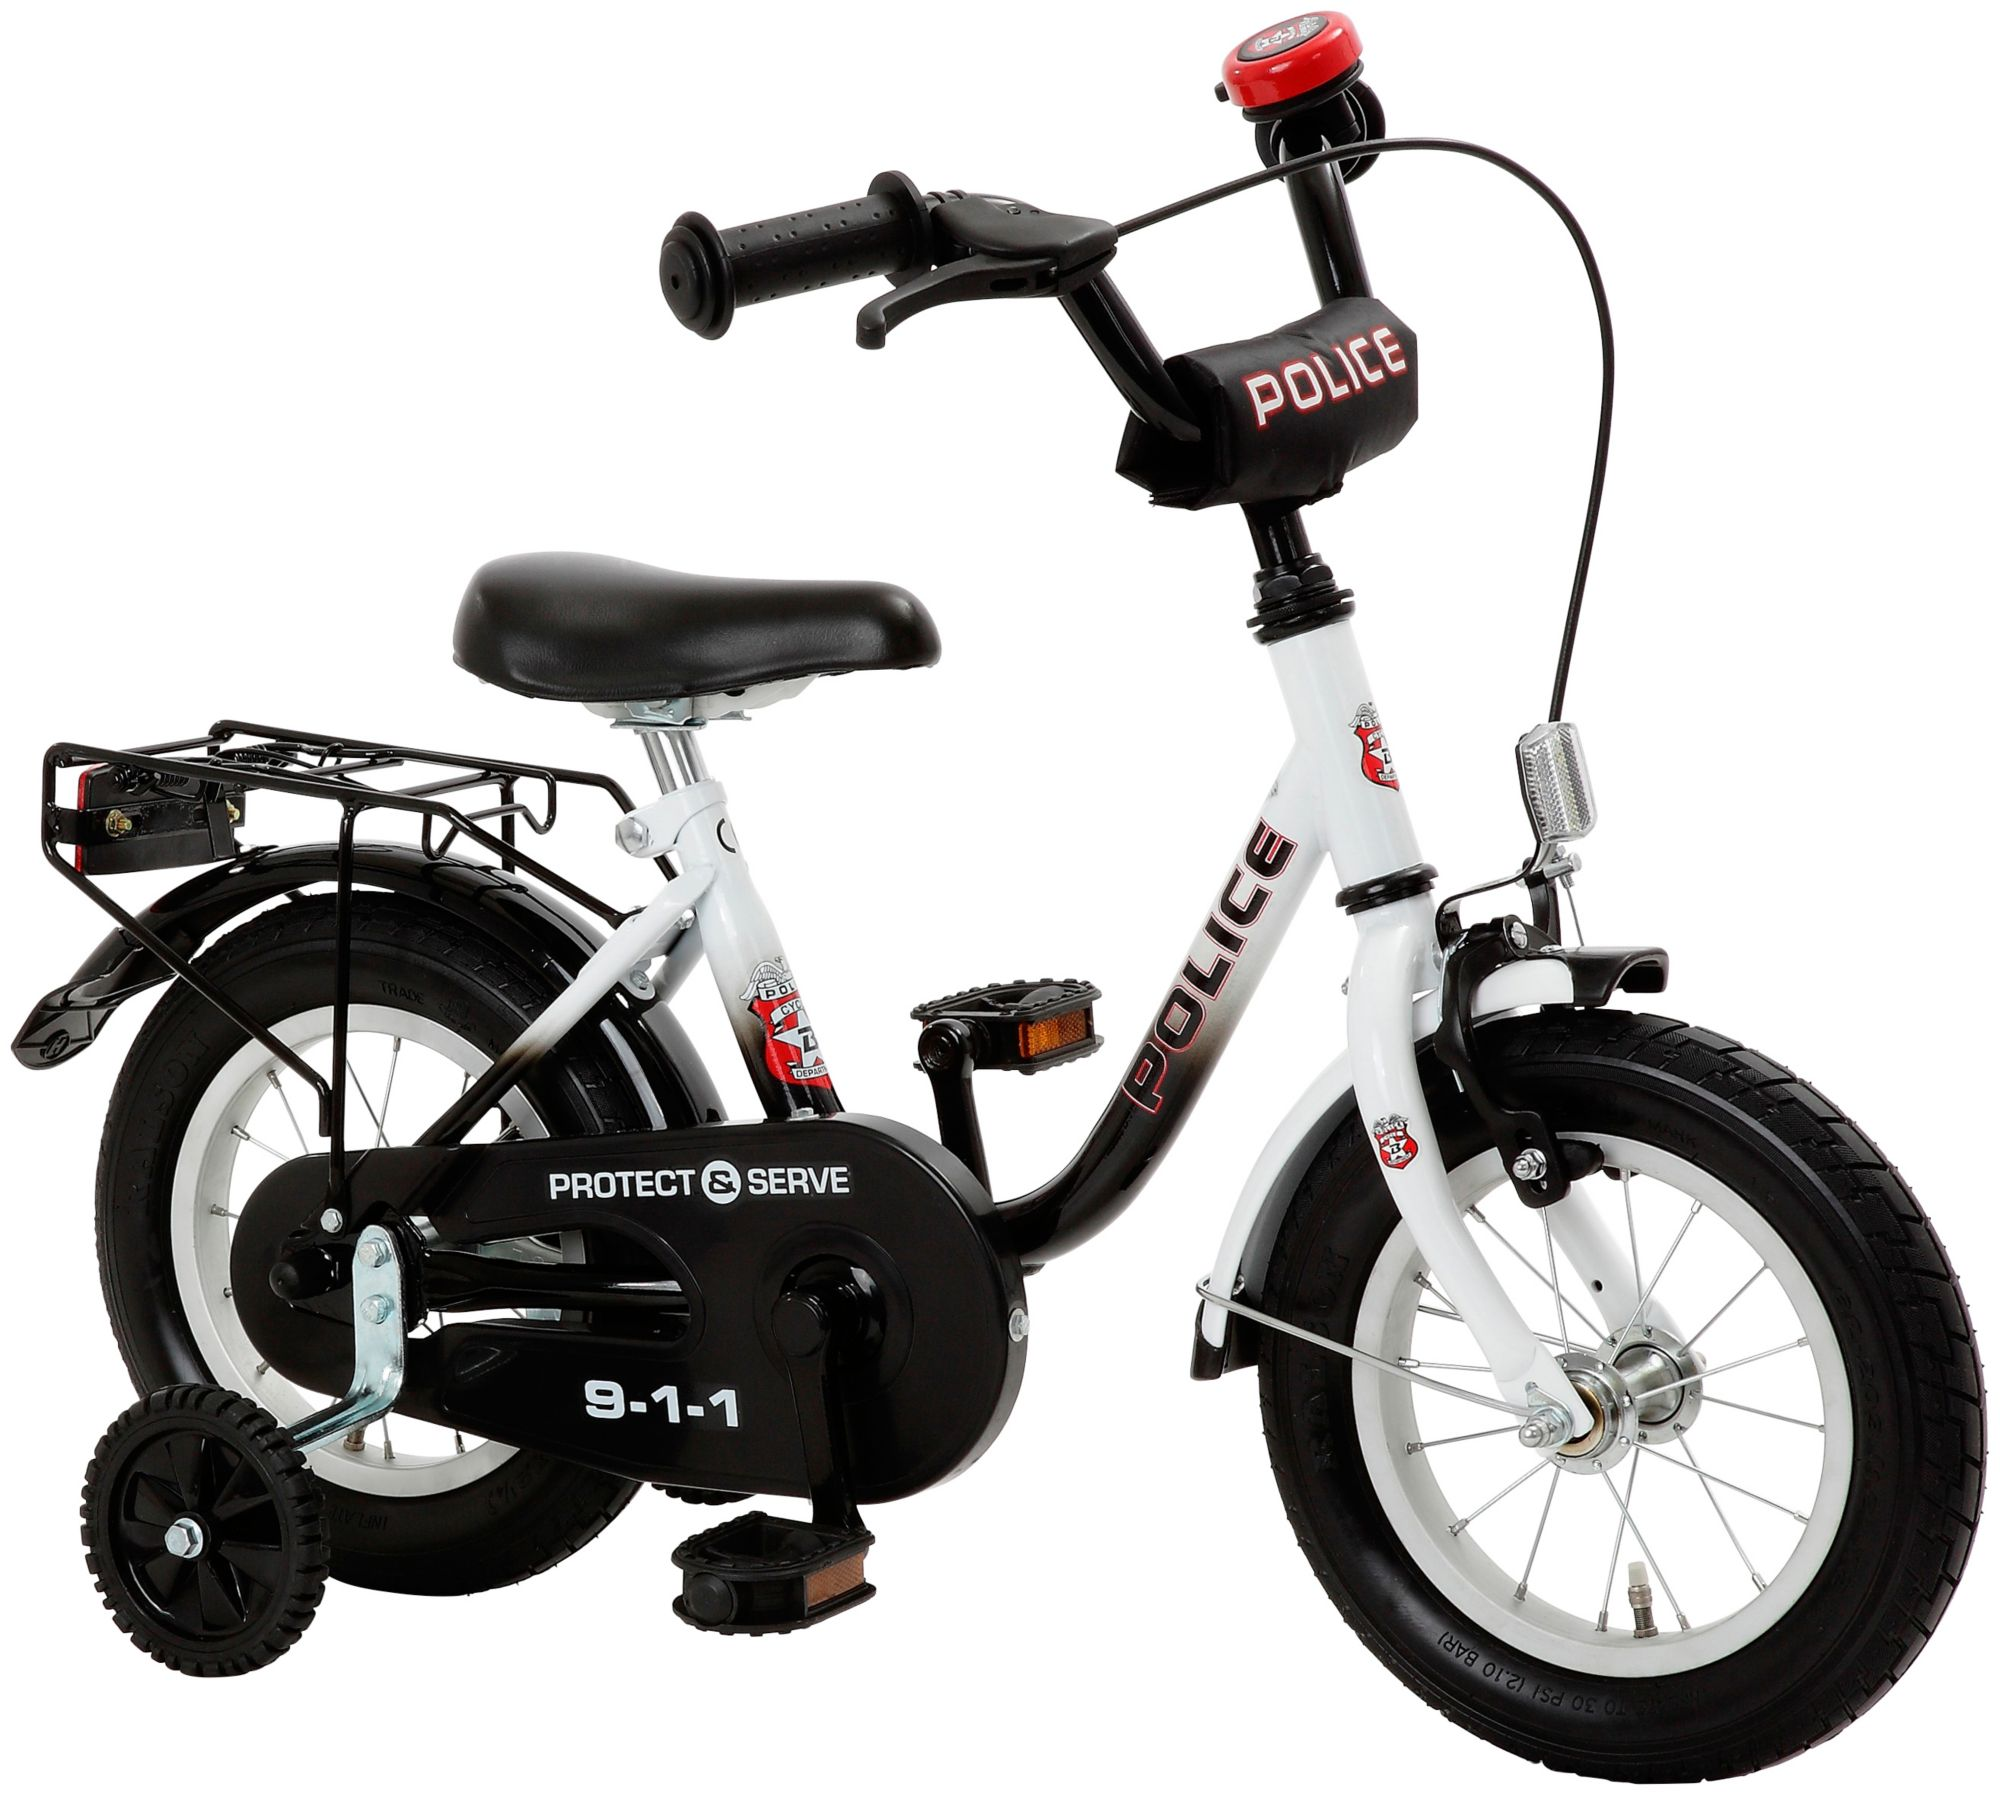 CYCLES4KIDS Cycles4Kids Kinderfahrrad »Police, 31,75 cm (12,5 Zoll)«